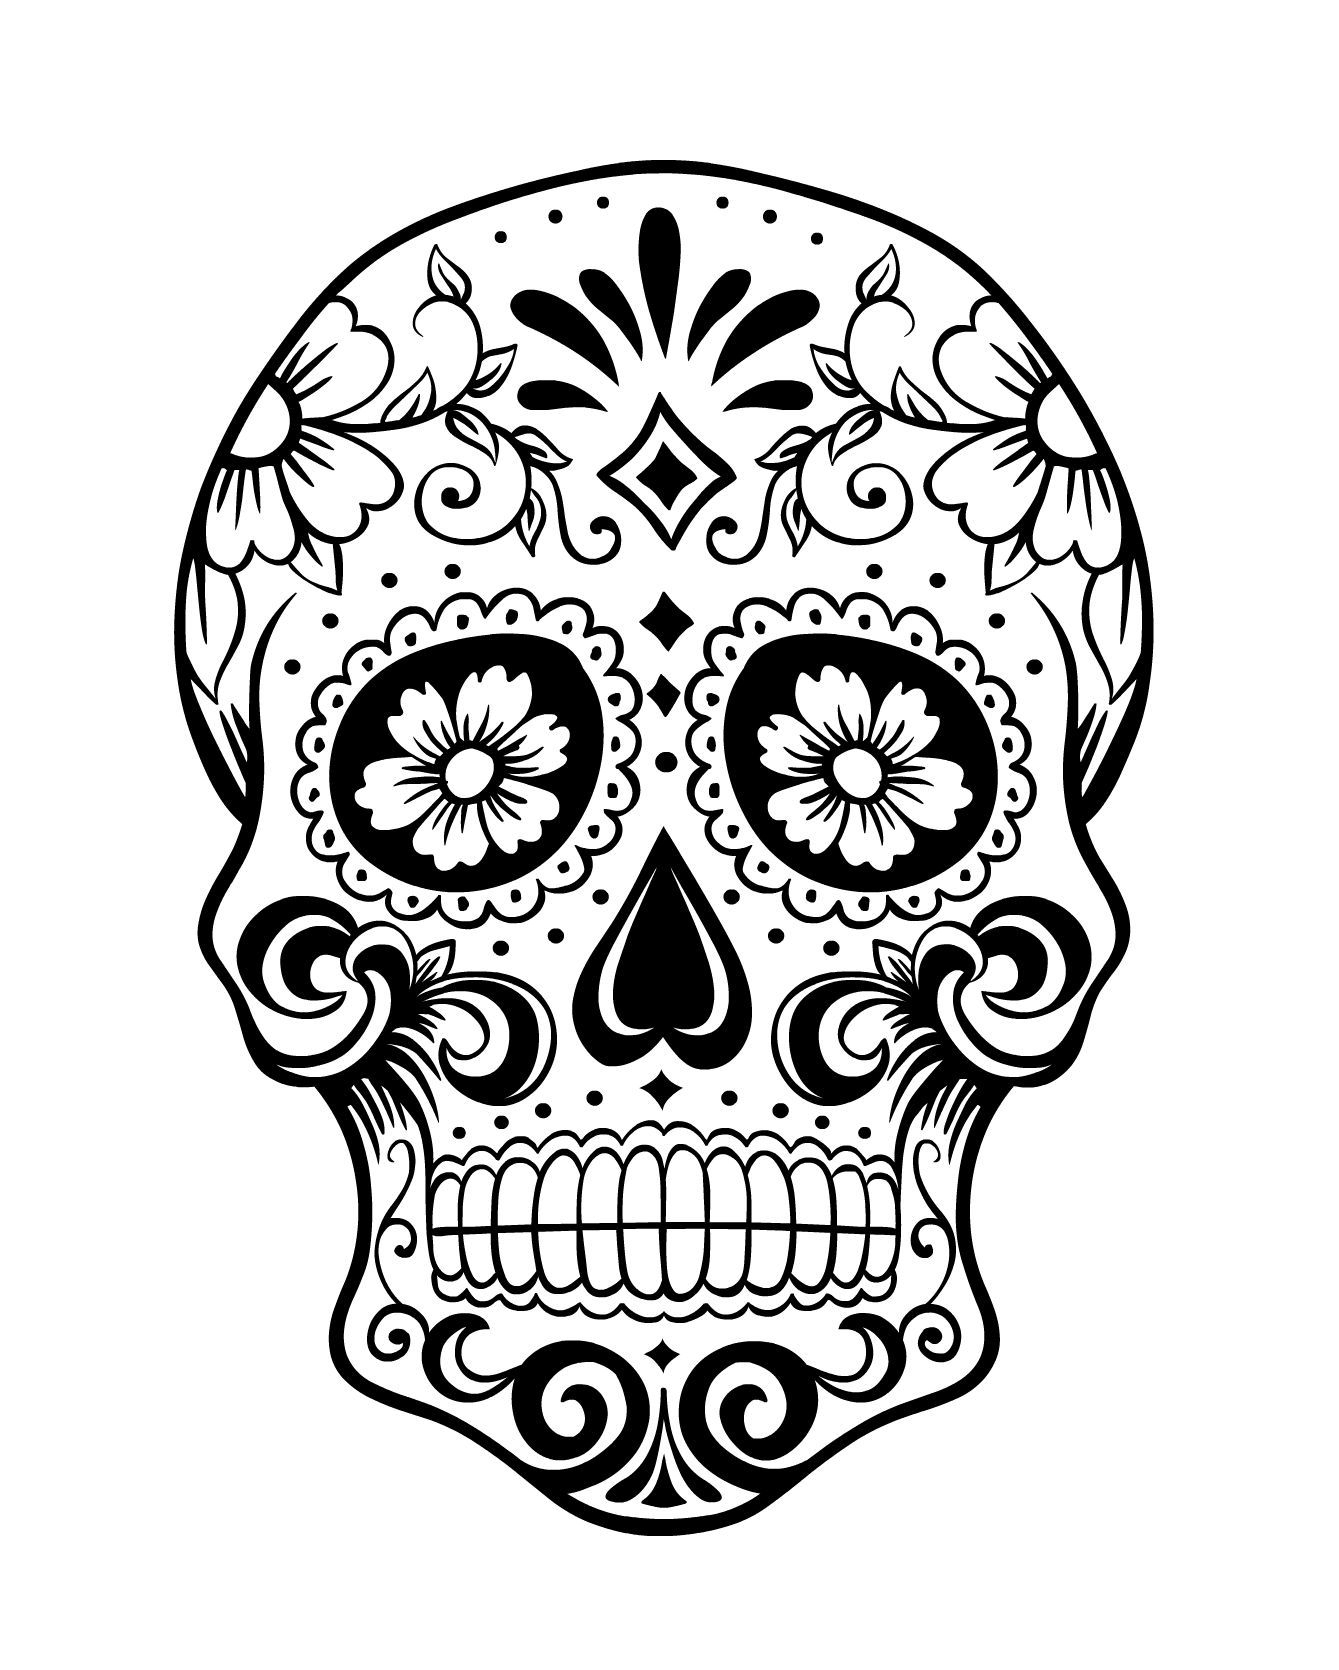 Coloring Pages : Day Of The Coloring Pages Free Sugar Skull Page - Free Printable Sugar Skull Coloring Pages